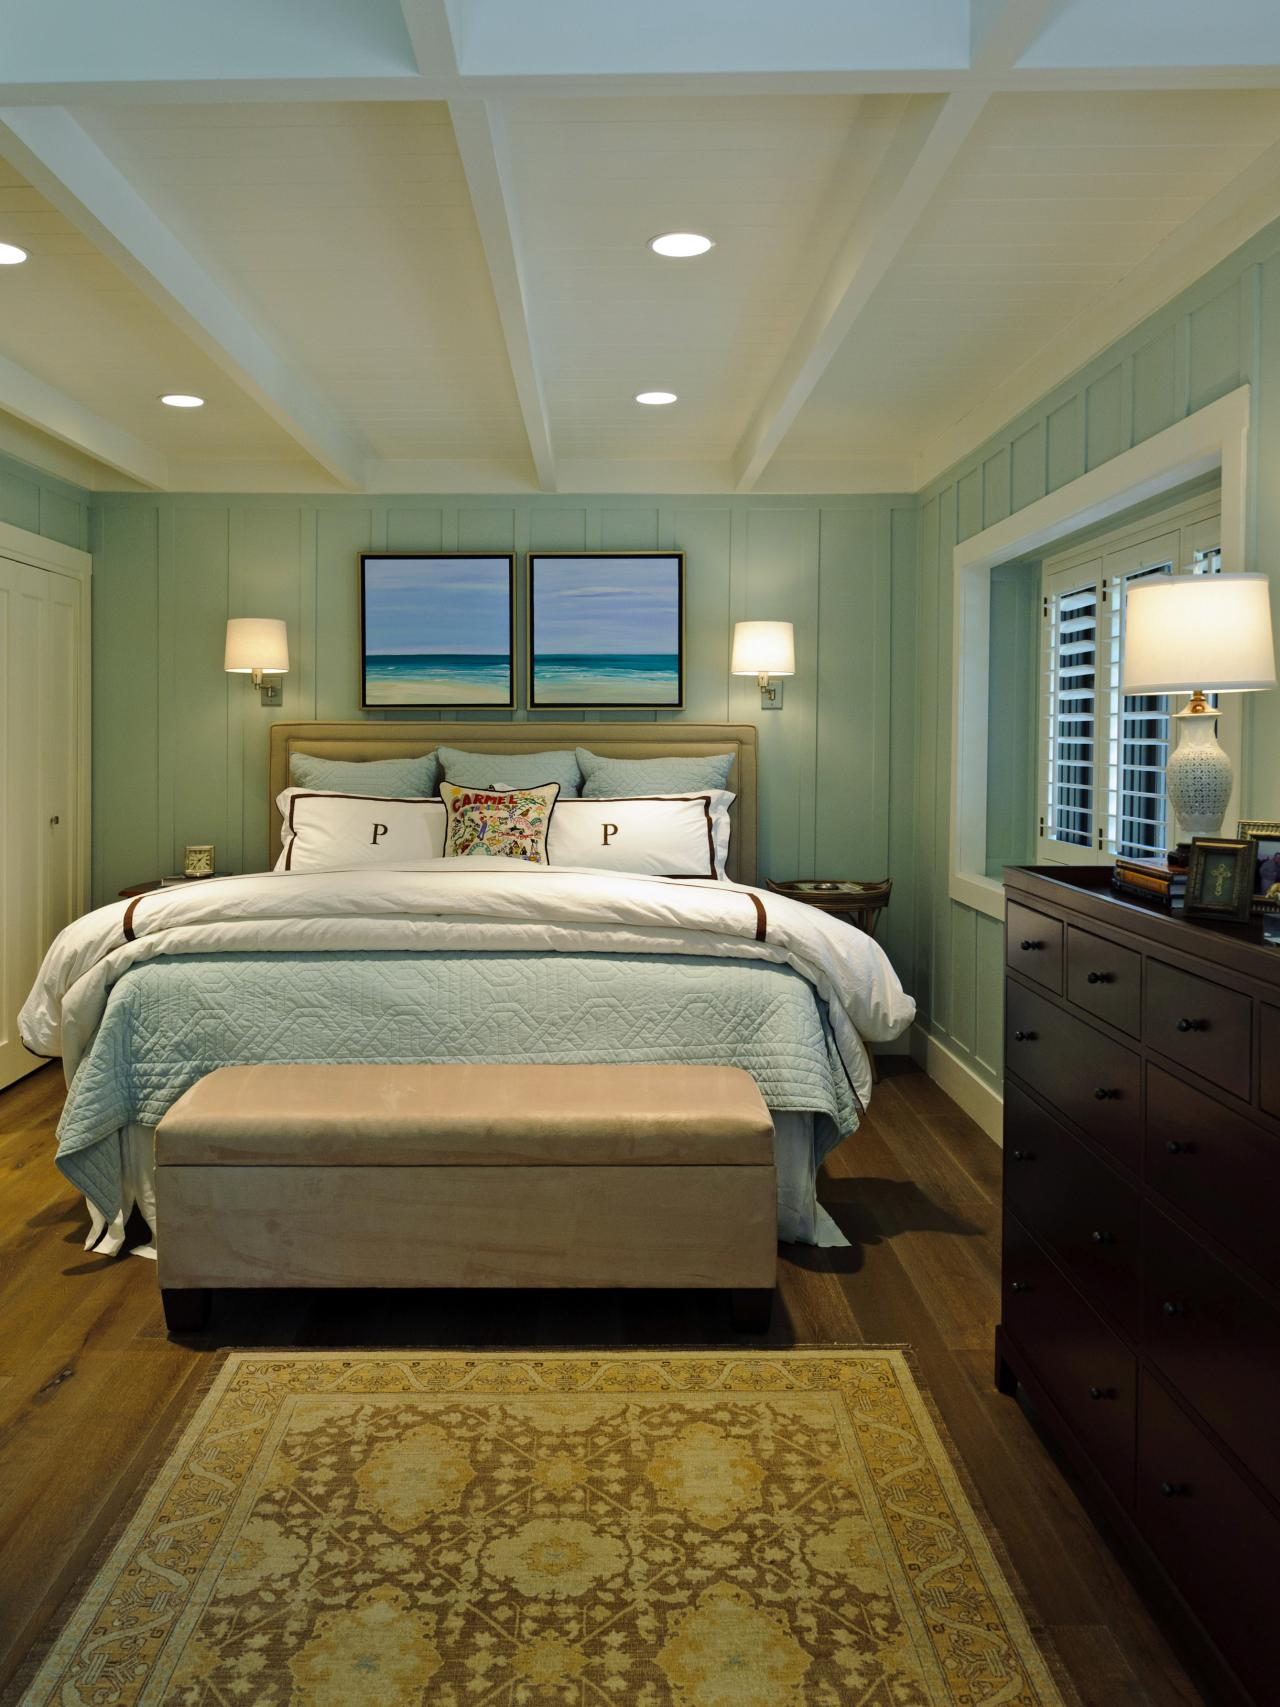 16 beach style bedroom decorating ideas for Bedroom theme ideas